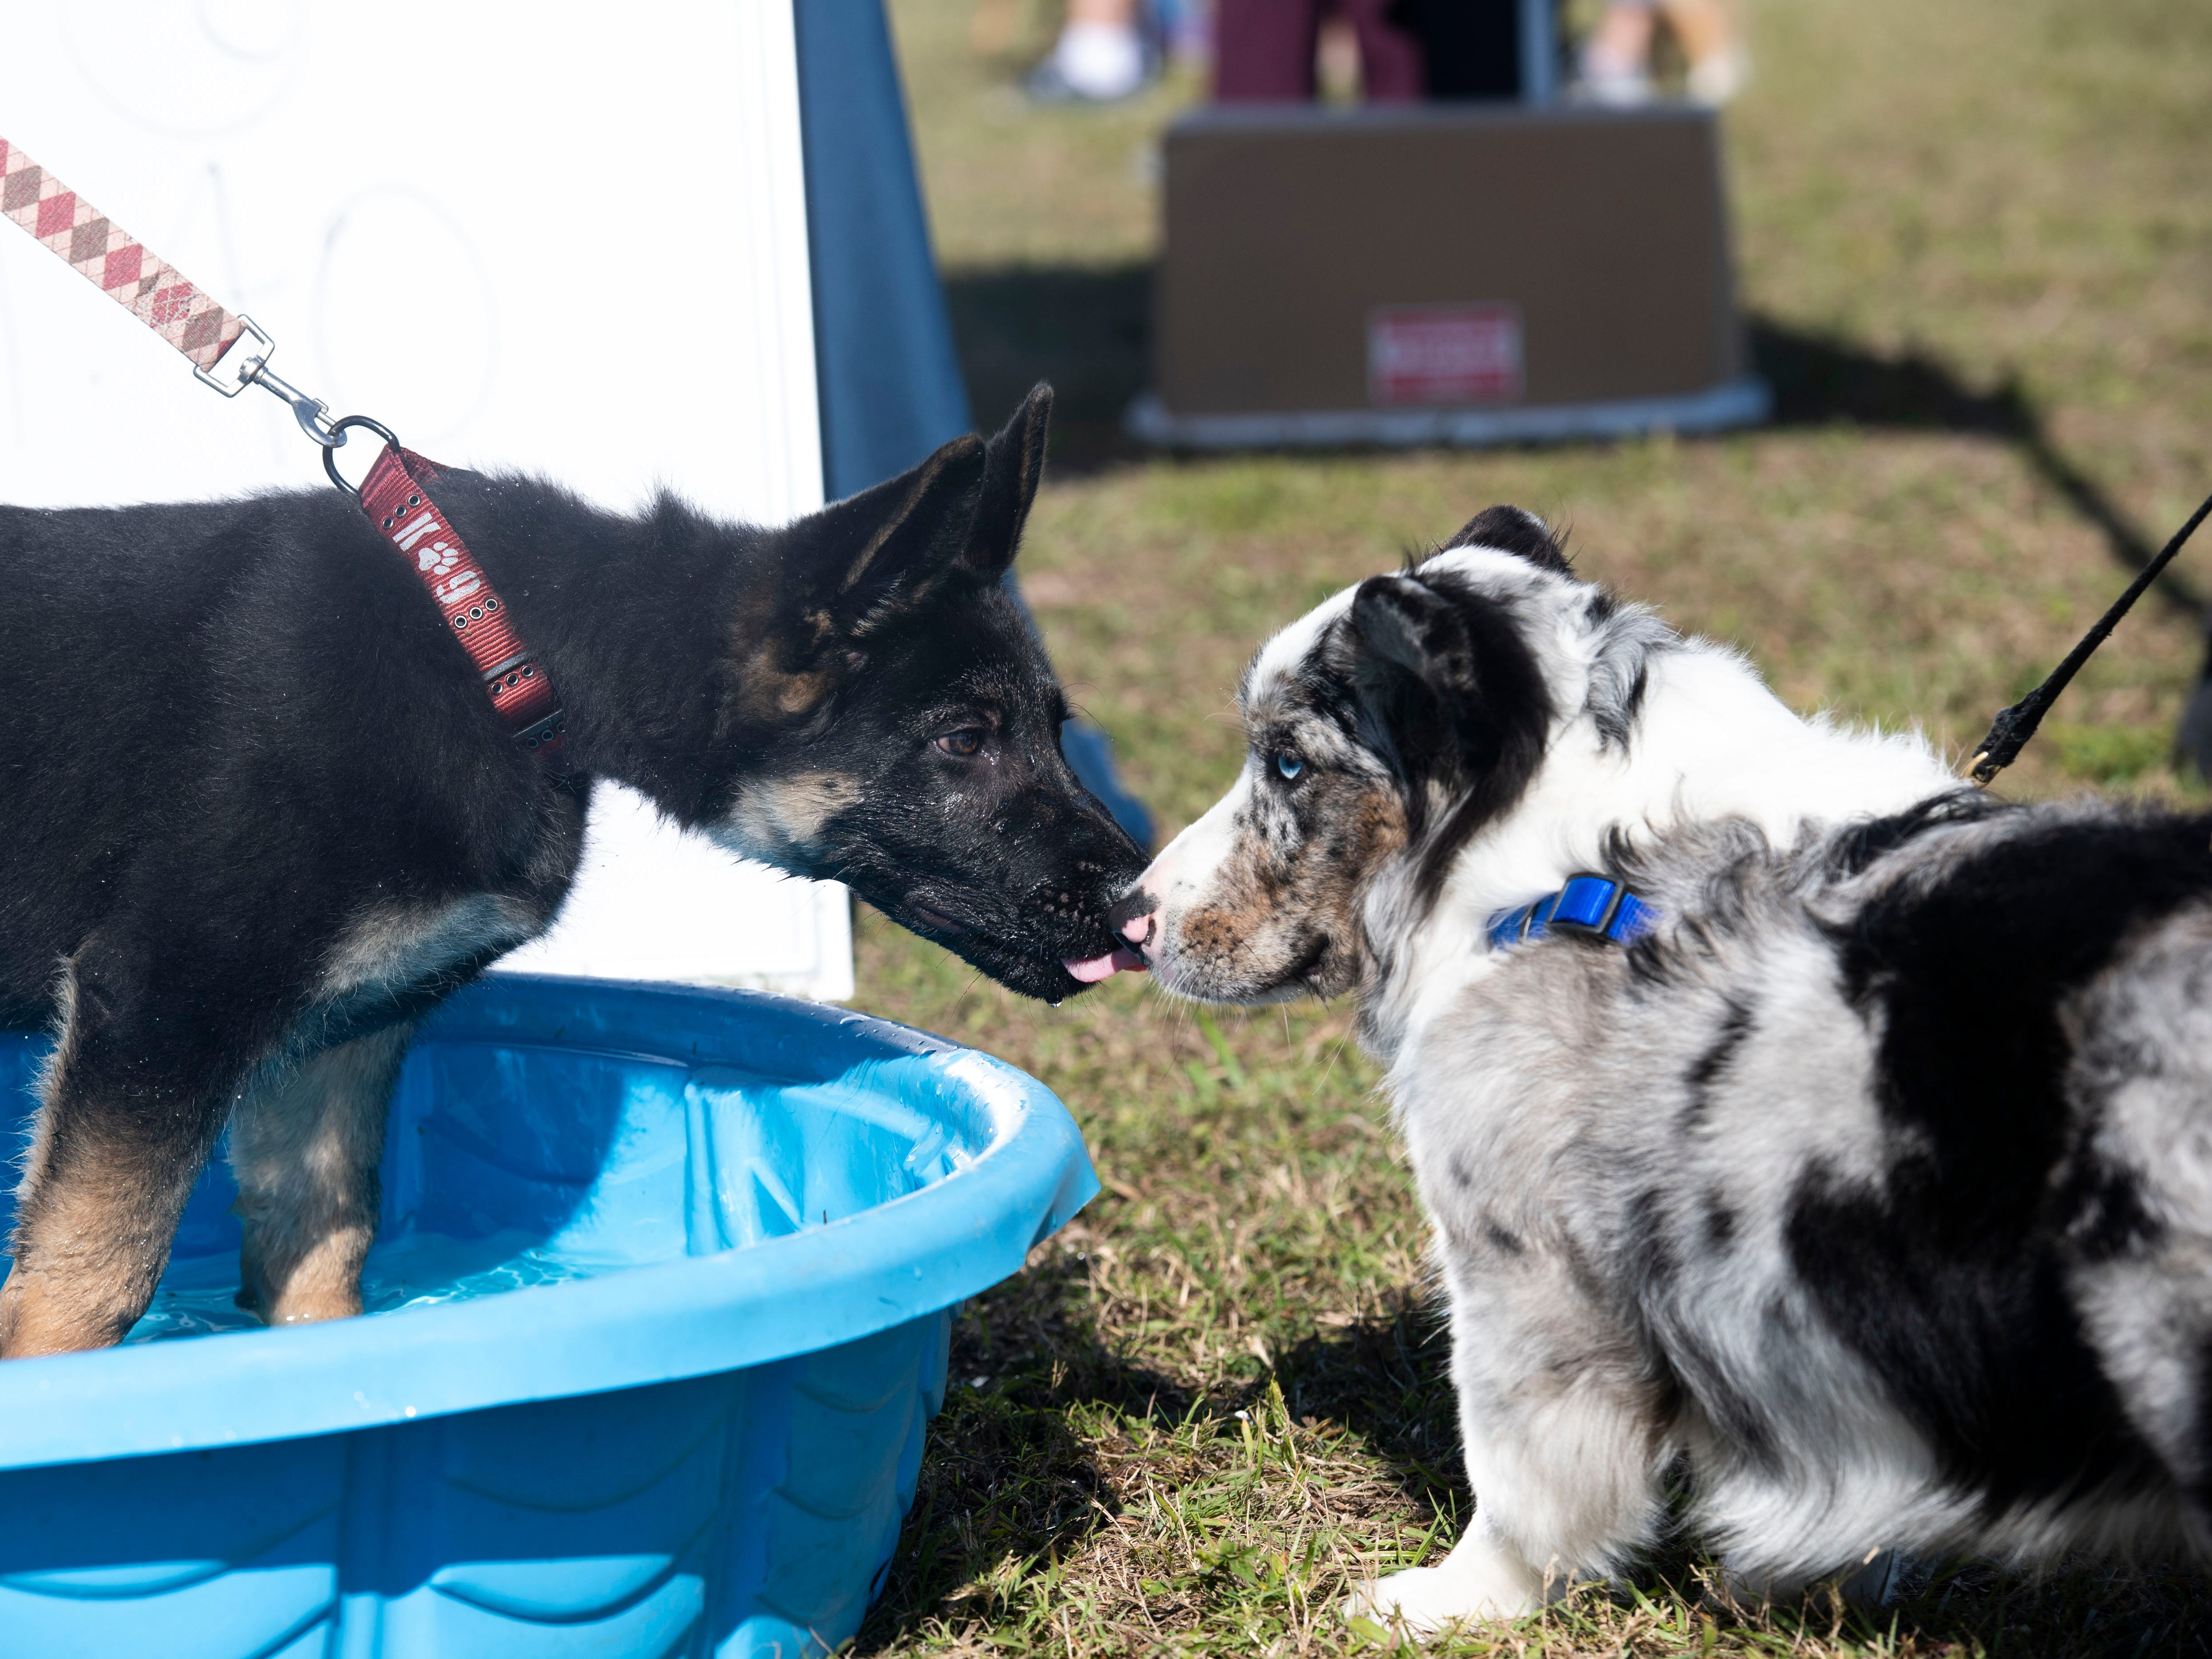 "Ceaser (left), 3 months, and Bode, 8 months, share a kiss during the Humane Society of Vero Beach and Indian River County's sixth annual Bark in the Park that featured the Disc-Connected K9's frisbee acts, the Ultimate Dock Diving Dogs, a kids zone, lure curse, the Humane Society's Mobile Adoption Unit and vendors on Saturday, Jan. 12, 2019, at Riverside Park in Vero Beach. ""The purpose of Bark in the Park is to bring the community's pet lovers together and to celebrate the human, animal bond,"" said Kate Meghji, executive director of the Humane Society. ""Watching dogs be dogs is pretty much the most entertaining and heartwarming thing ever,"" she said."